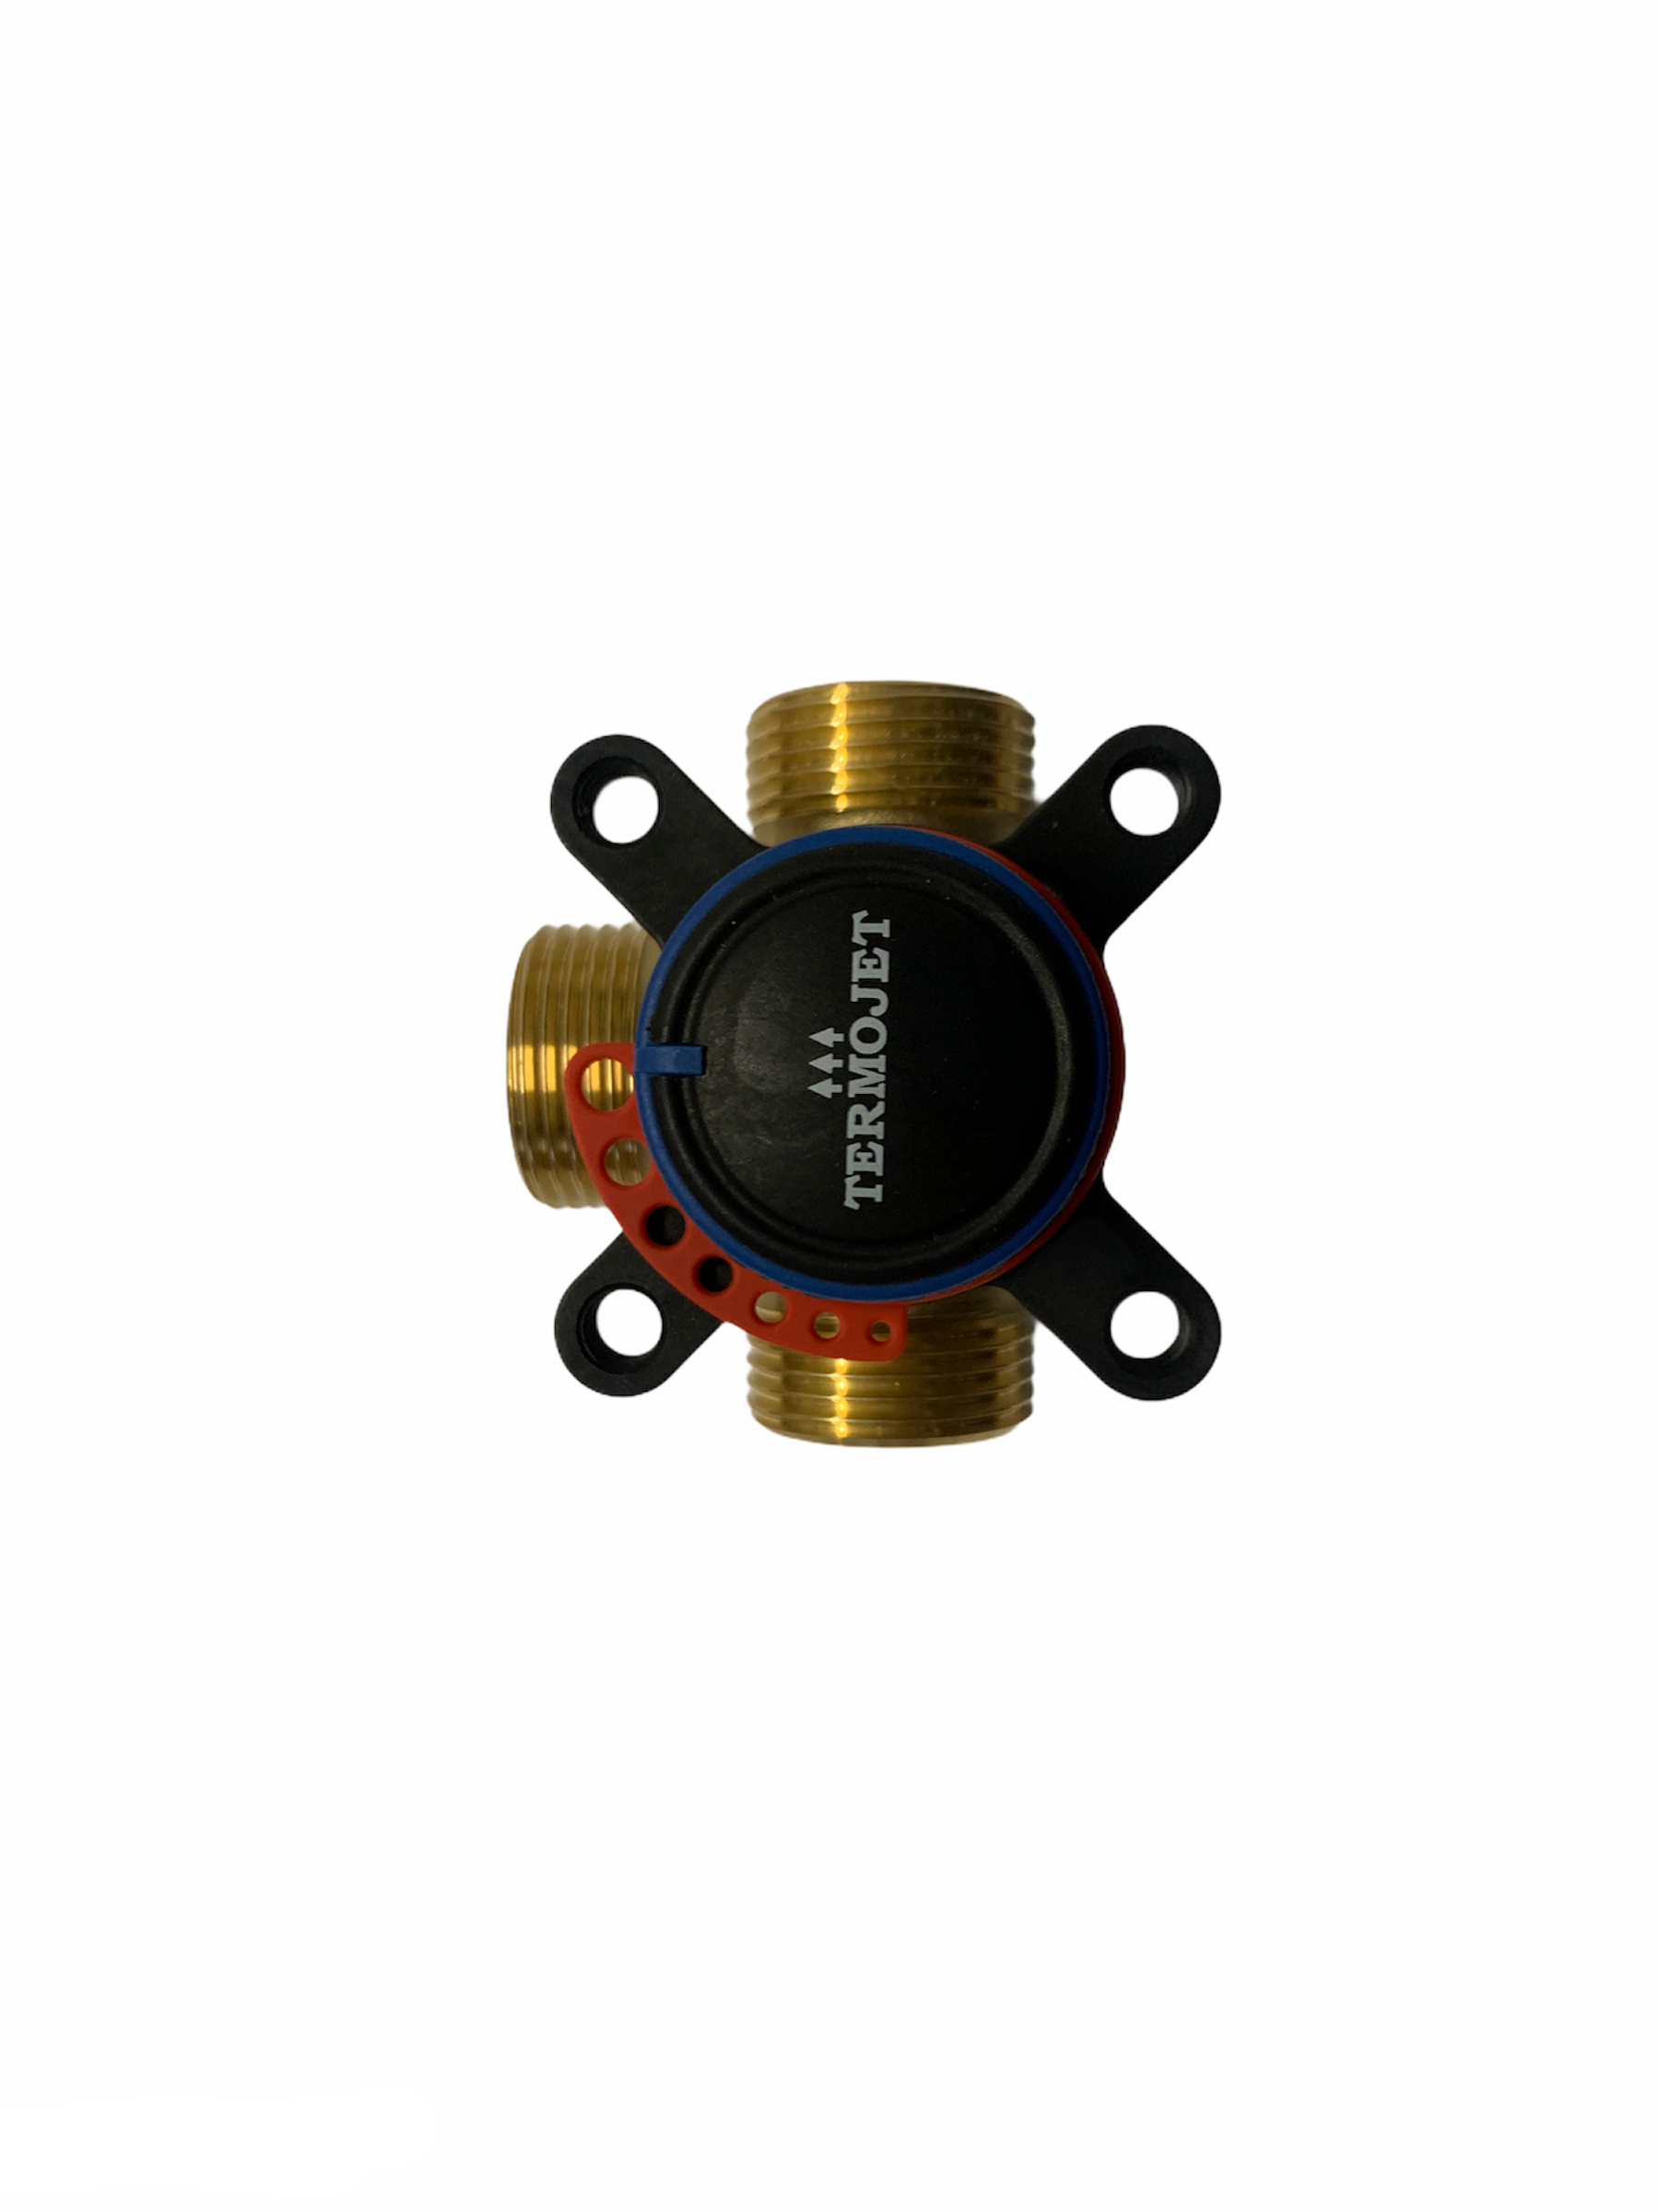 3-way valve with external thread 1 1/2''